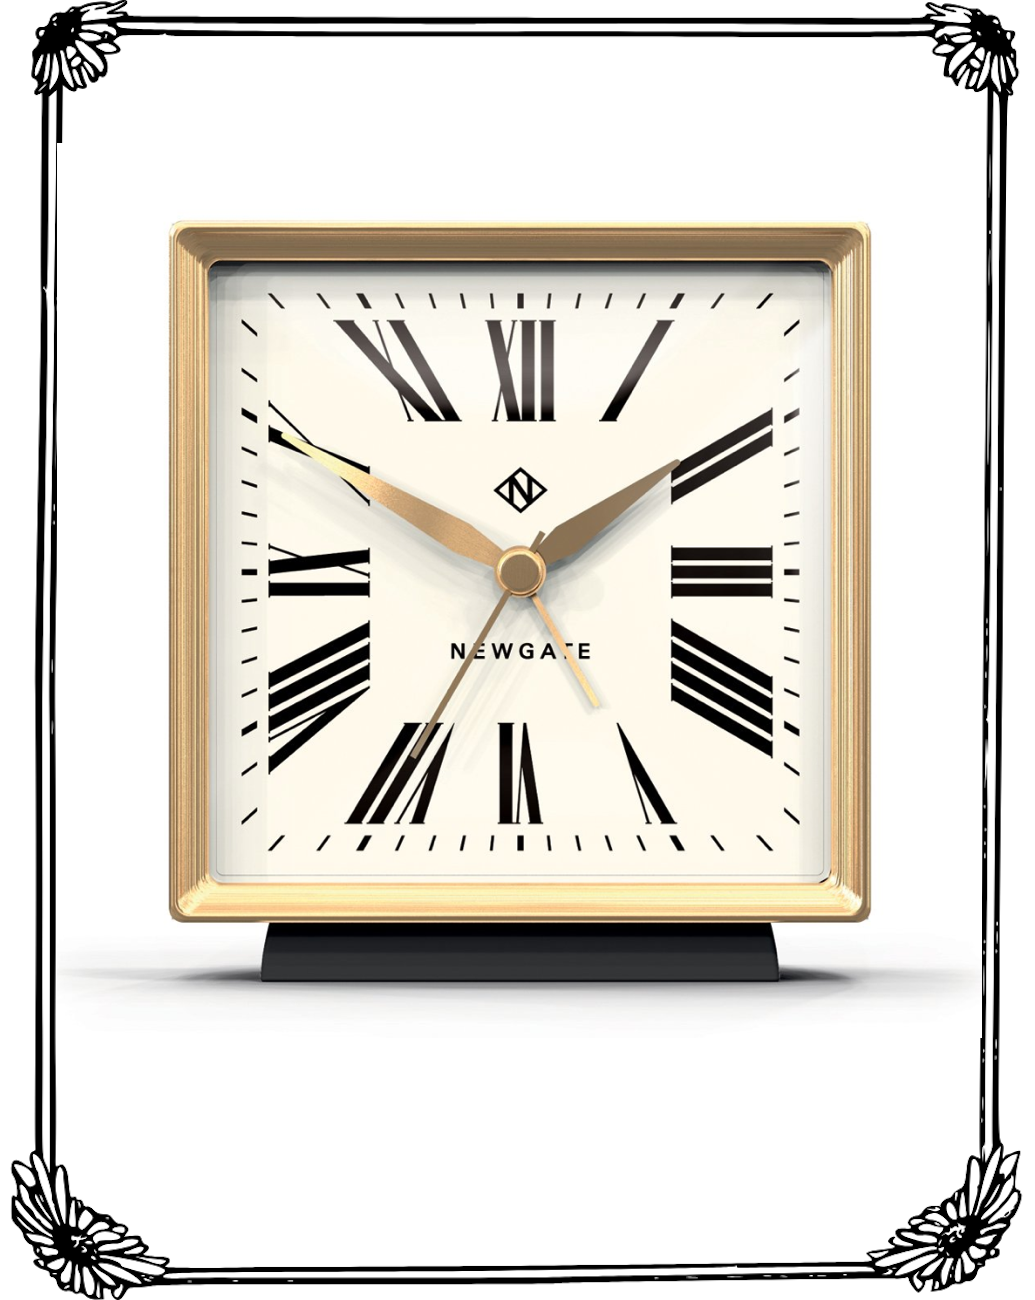 burke-decor-newgate-skyscraper-clock.png